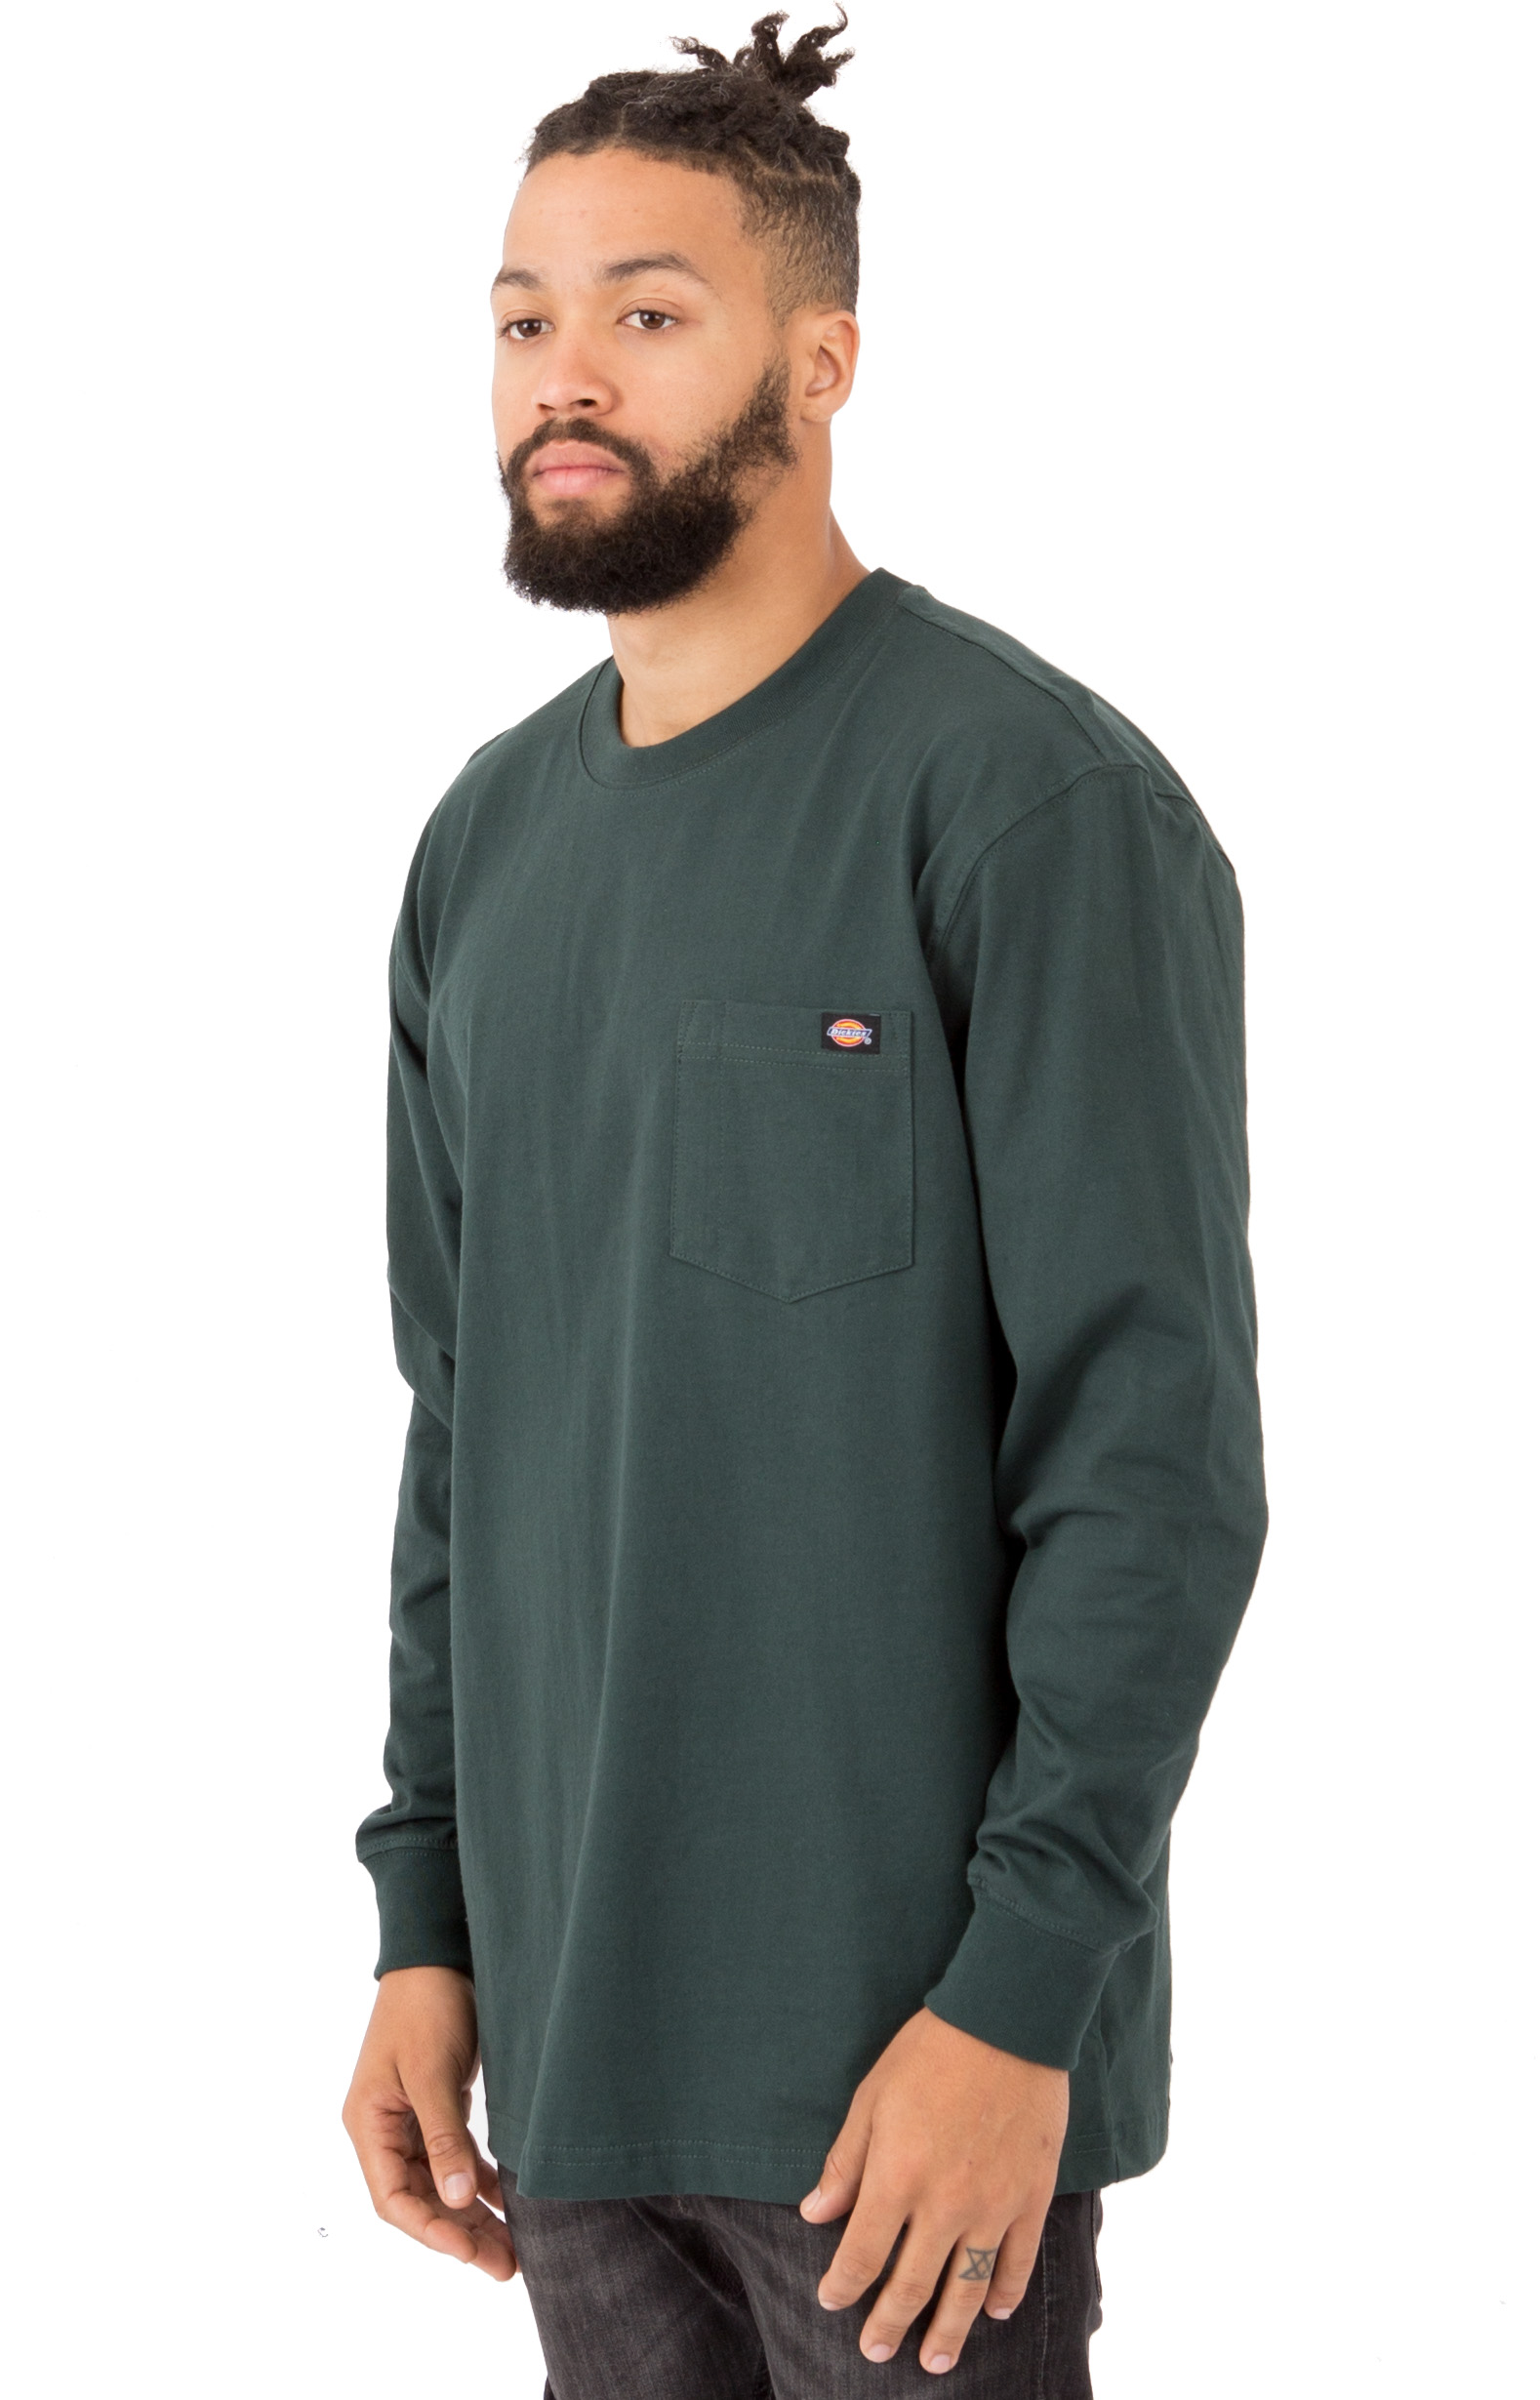 (WL450GH) Long Sleeve Heavyweight Crew Neck Shirt - Hunter Green 2